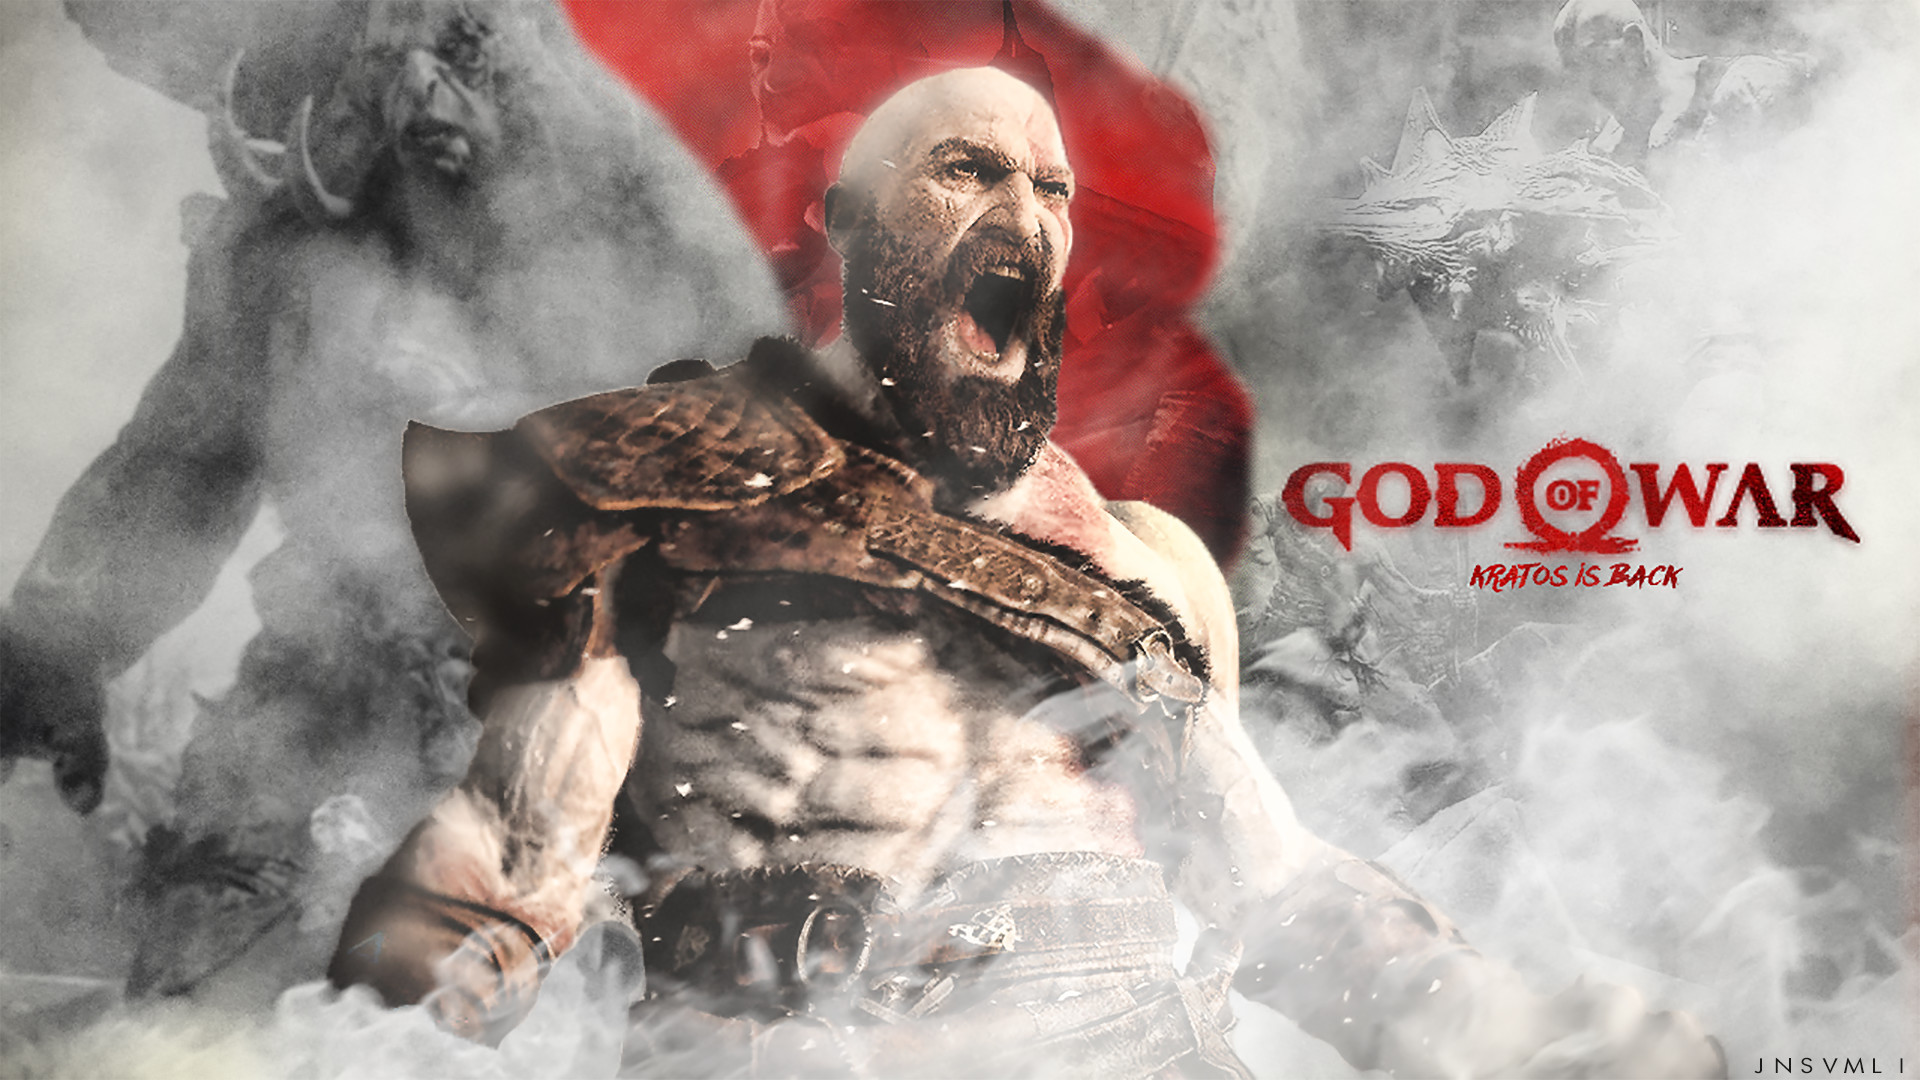 God Of War Wallpaper 1920x1080 Posted By Christopher Tremblay